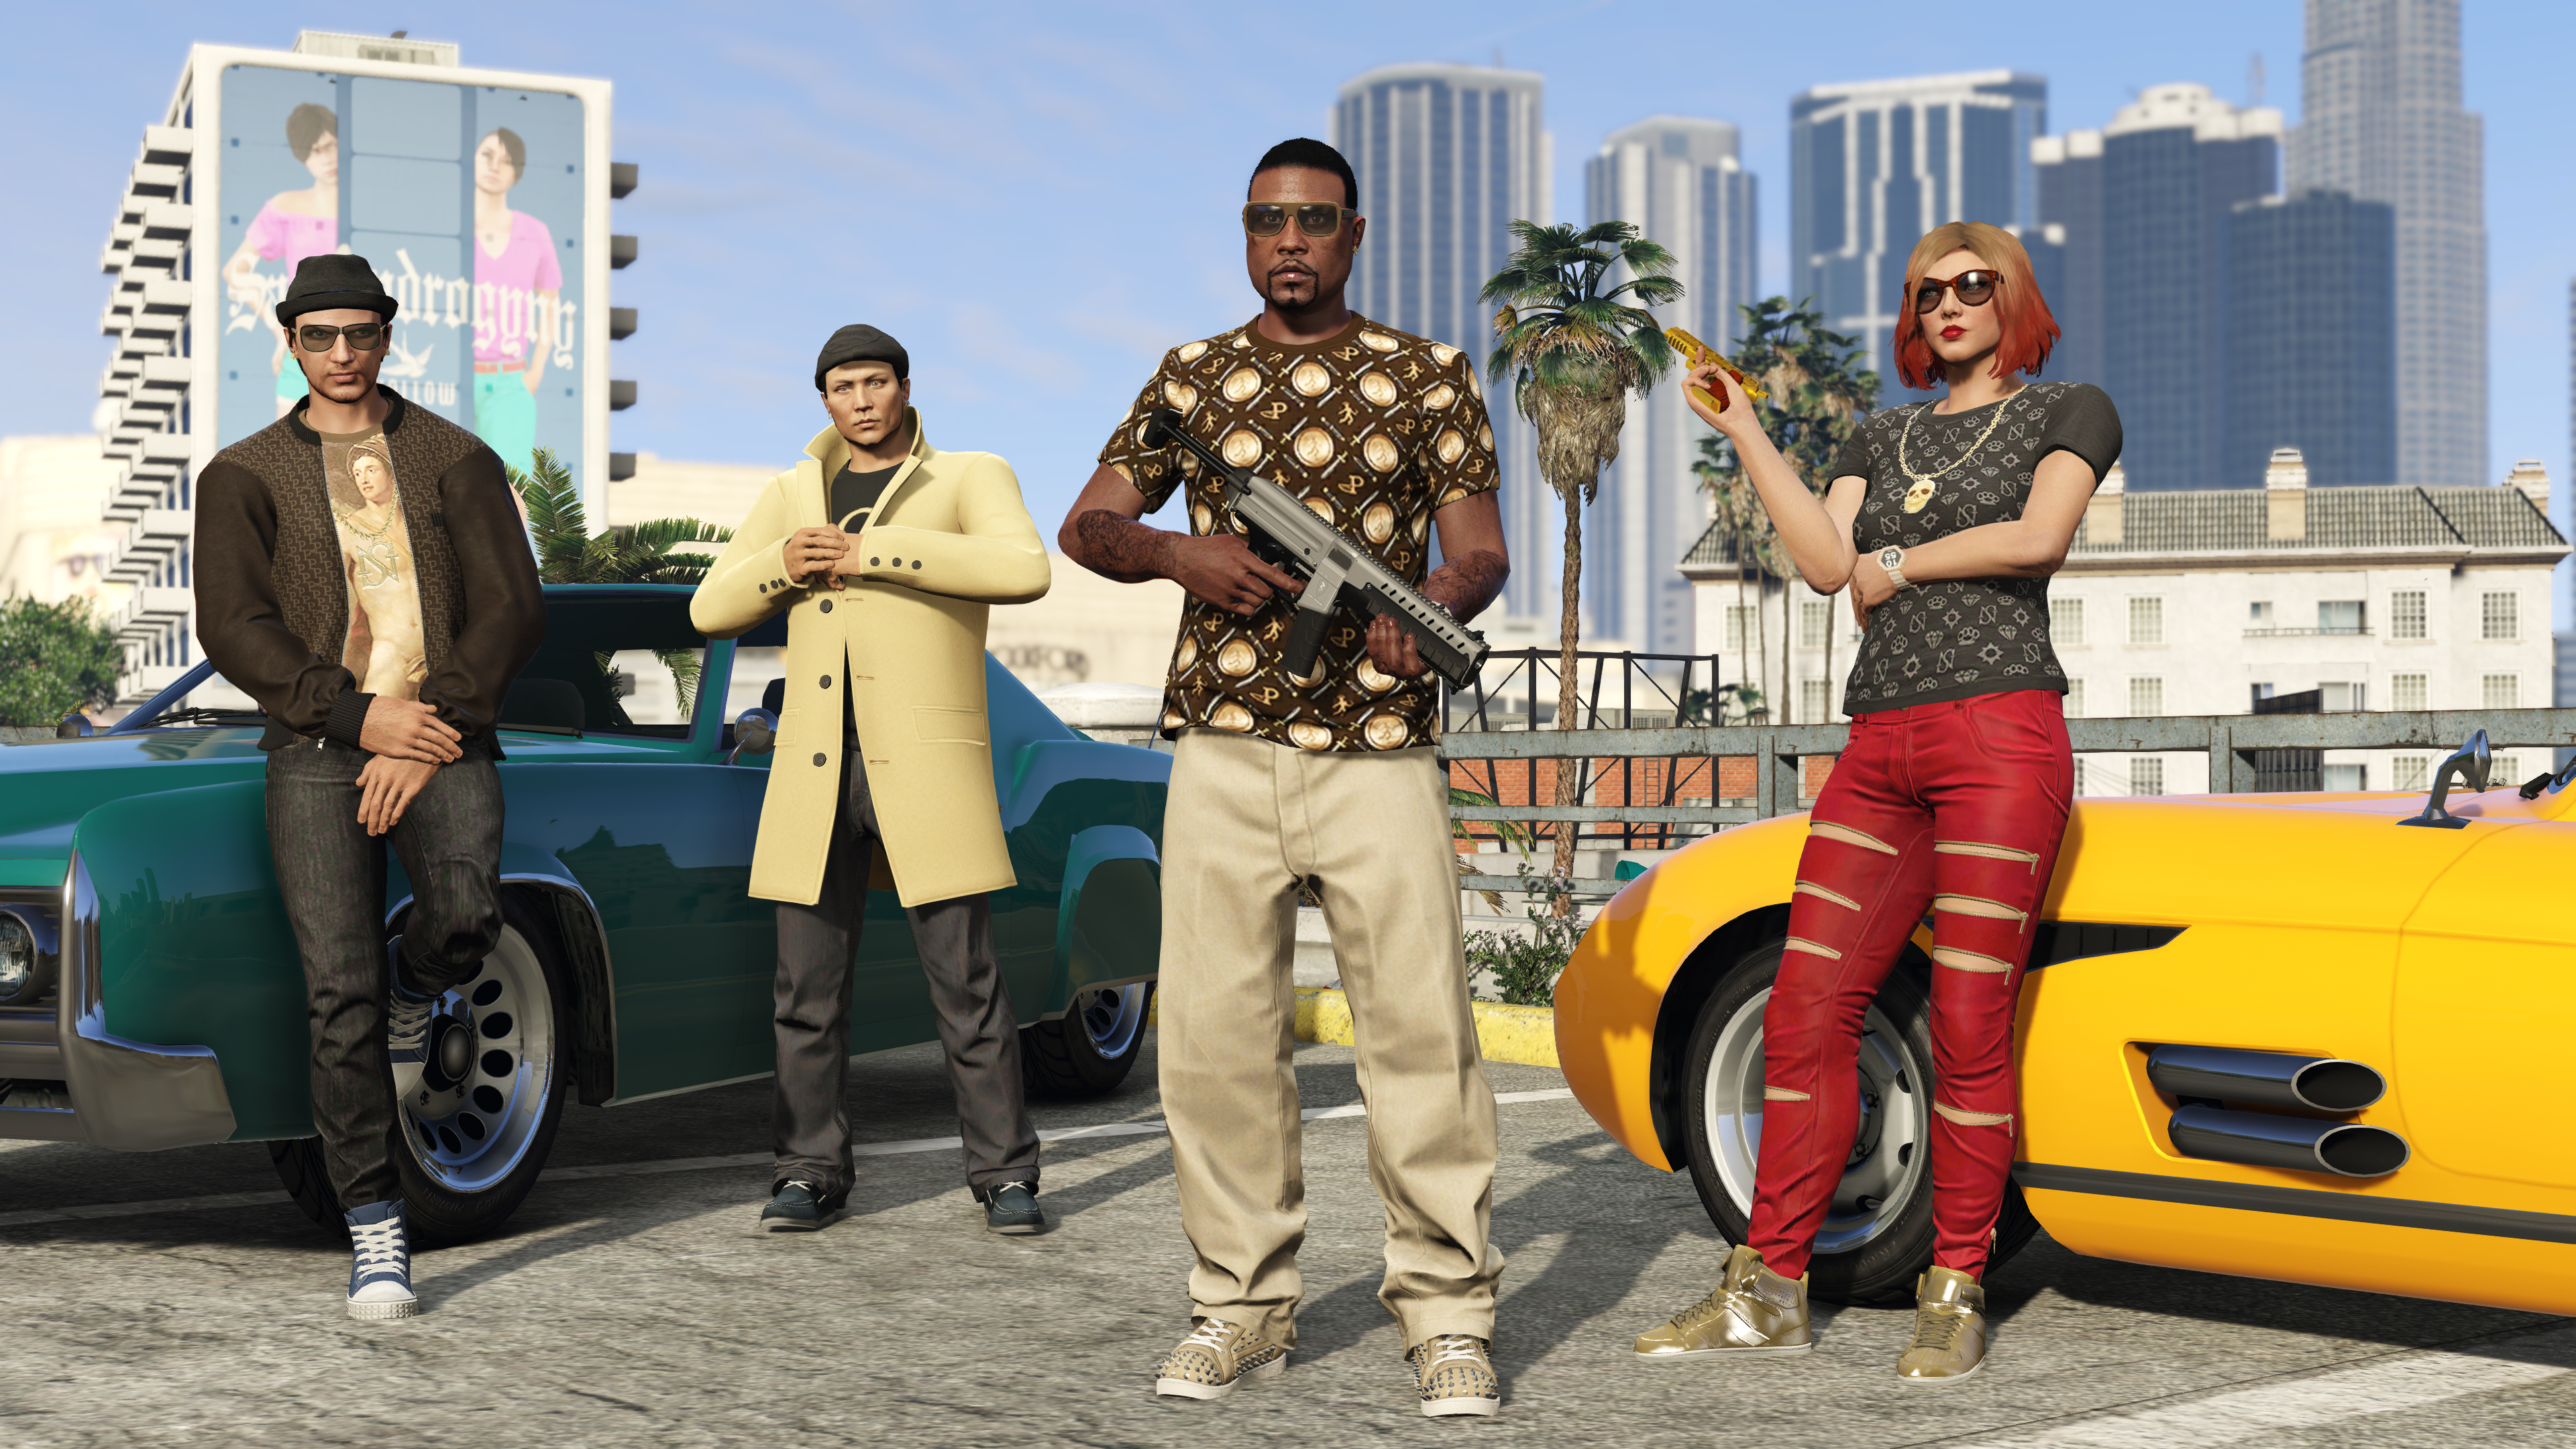 GTAV_PC_IGG1_010_FULL.jpg